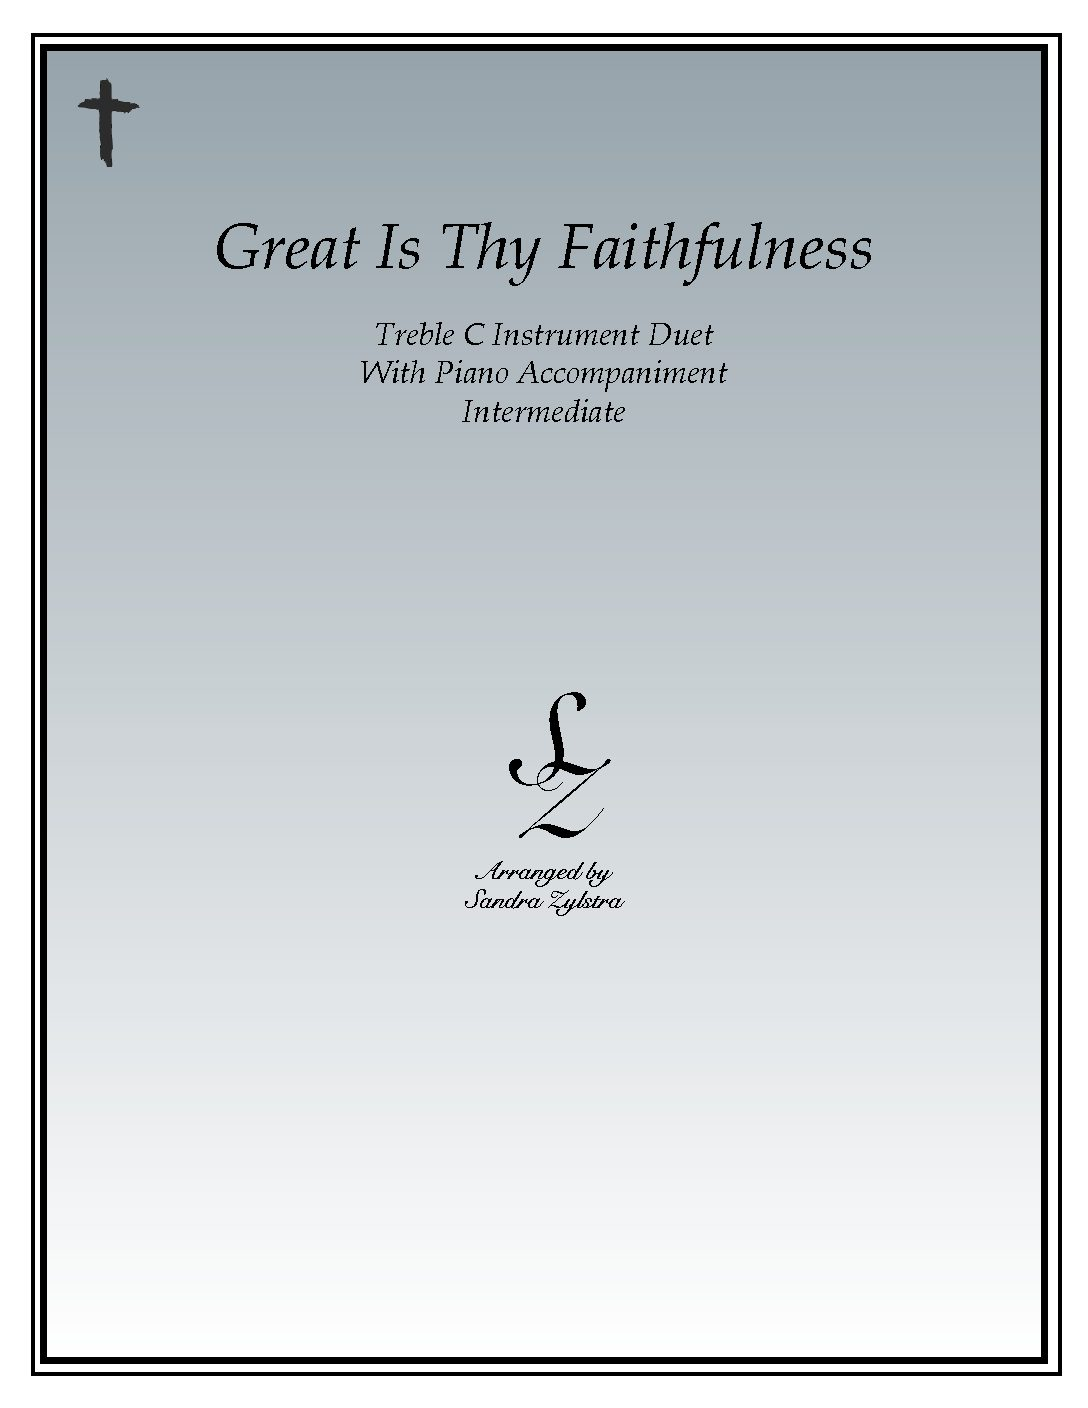 Great Is Thy Faithfulness – Instrument Duet & Piano Accompaniment